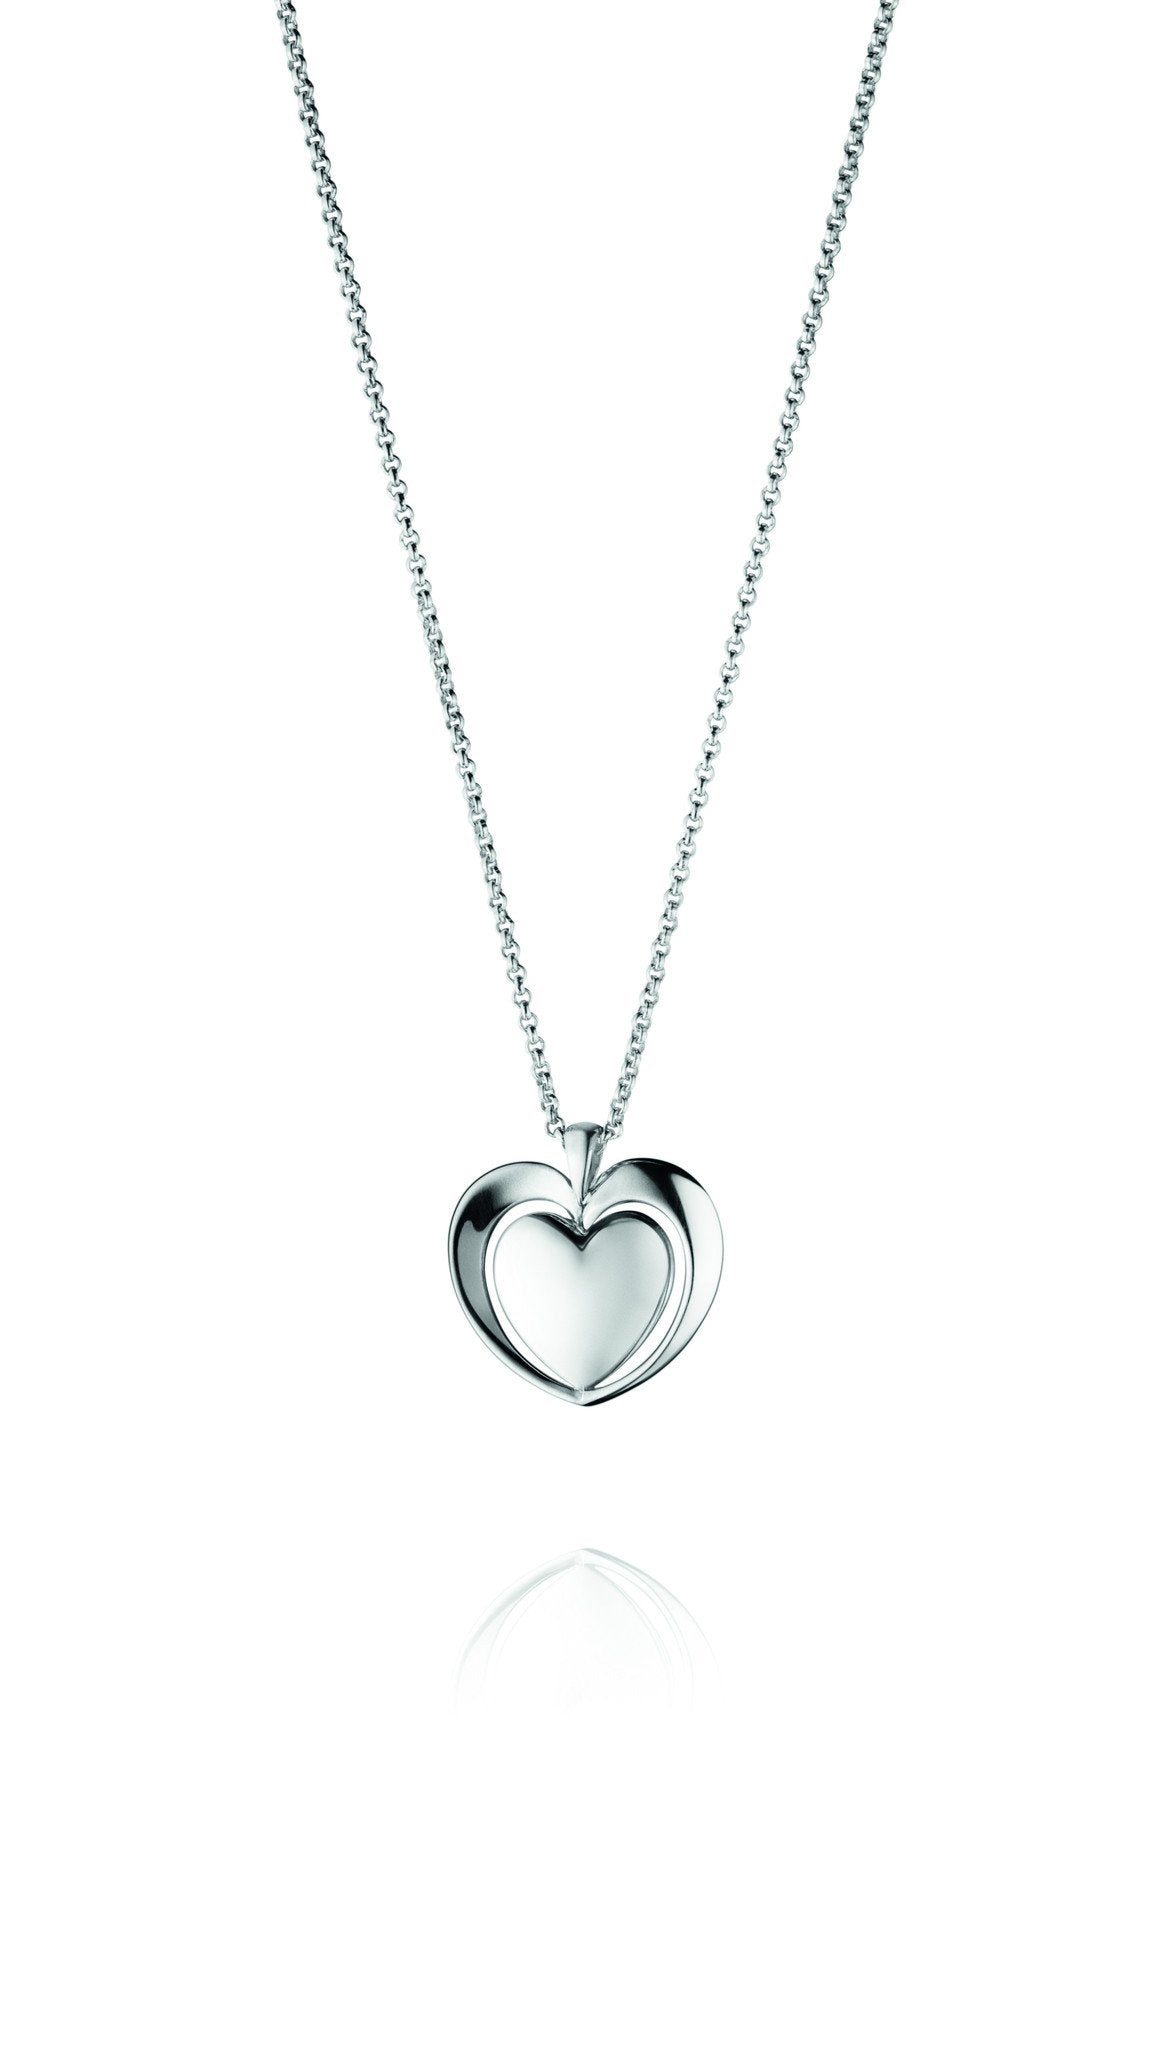 Georg Jensen Sterling Silver Artist Heart Necklace D